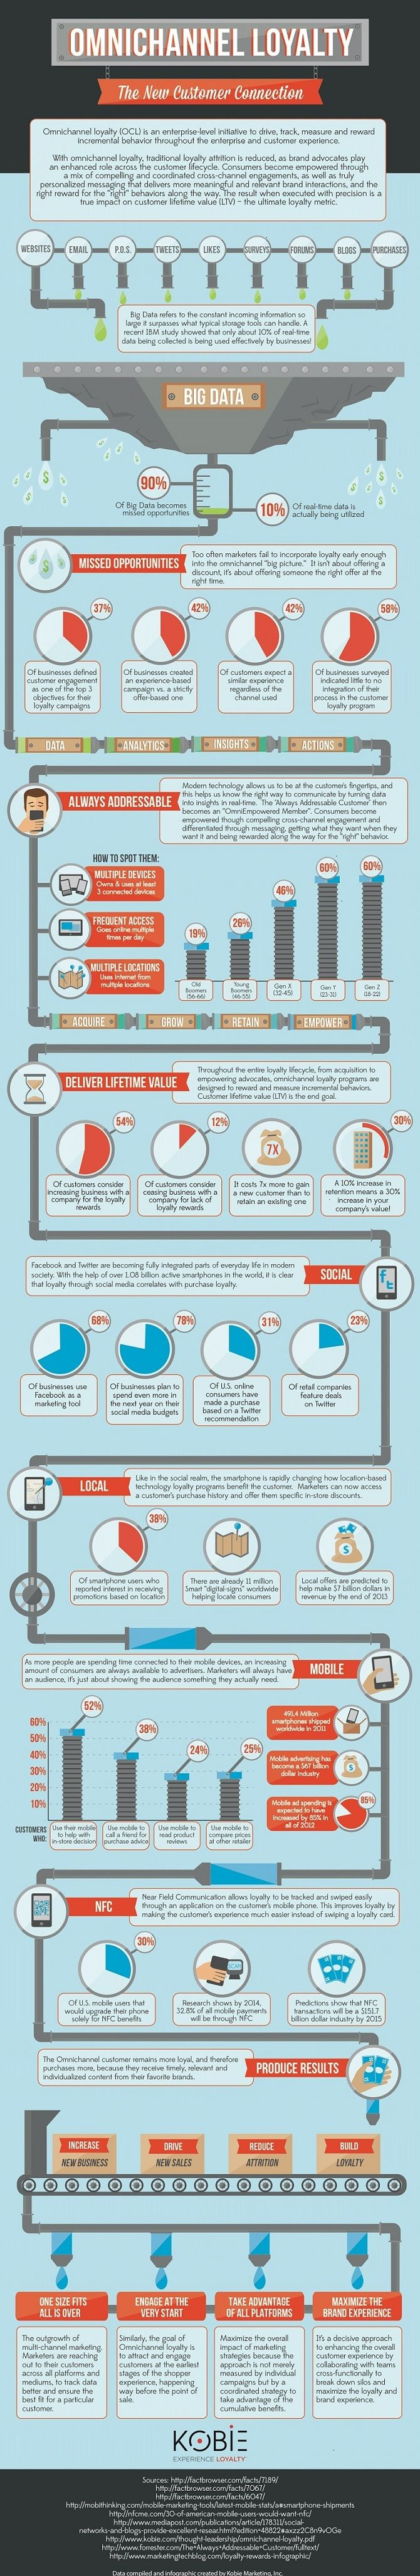 "The following infographic covers missed opportunities, the ""always addressable consumer,"" the importance of delivering lifetime value, the role of social media in OCL, and more.    Read more: http://www.marketingprofs.com/chirp/2013/10476/omnichannel-loyalty-the-new-customer-connection-infographic#ixzz2PkG253Ac"